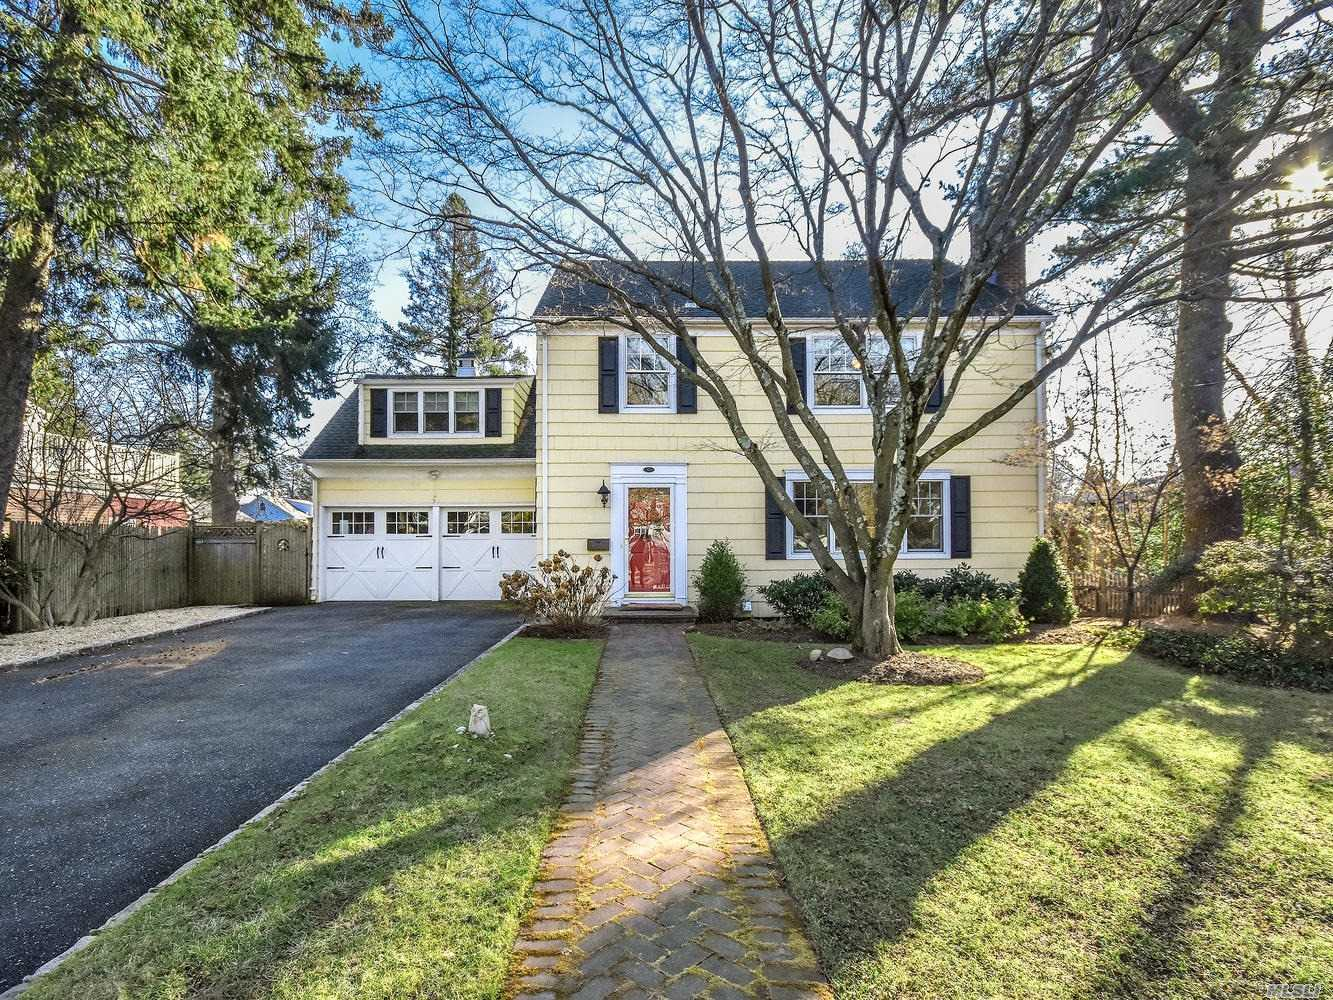 Property for sale at 127 Sea Cliff Ave, Sea Cliff,  New York 11579